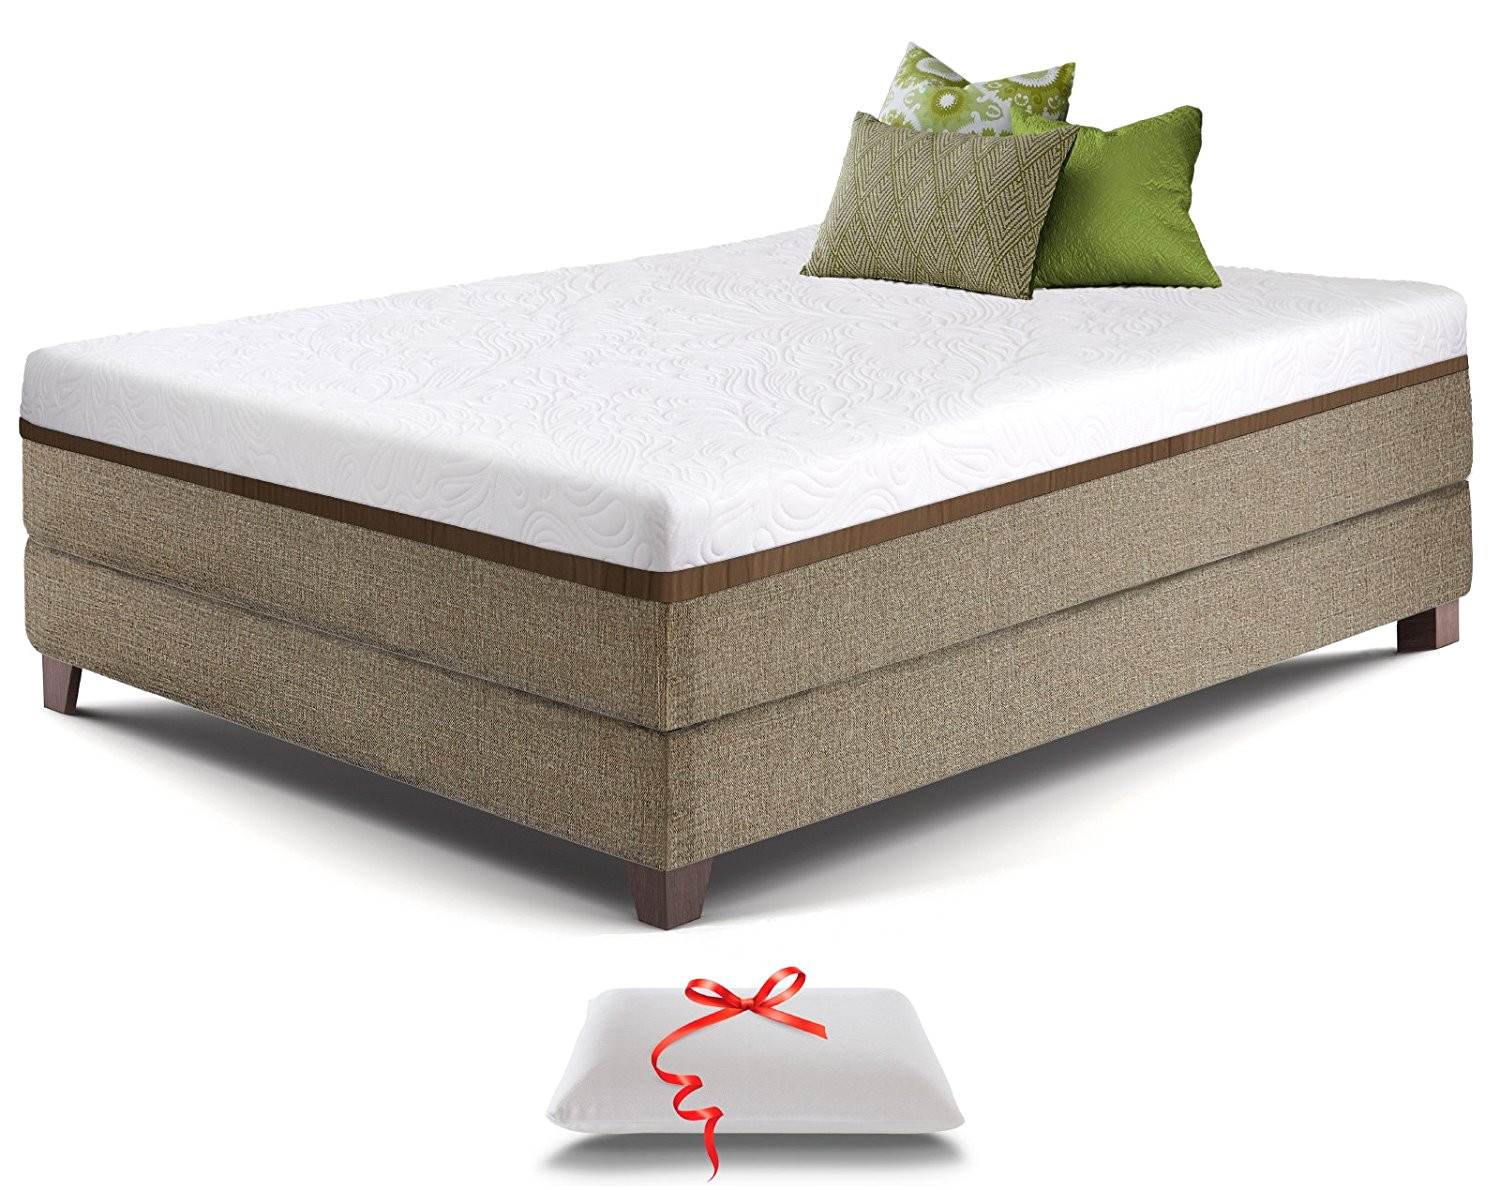 amazon com live and sleep resort ultra twin xl size 12 inch cooling gel memory foam mattress with memory foam pillow twin extra long kitchen dining